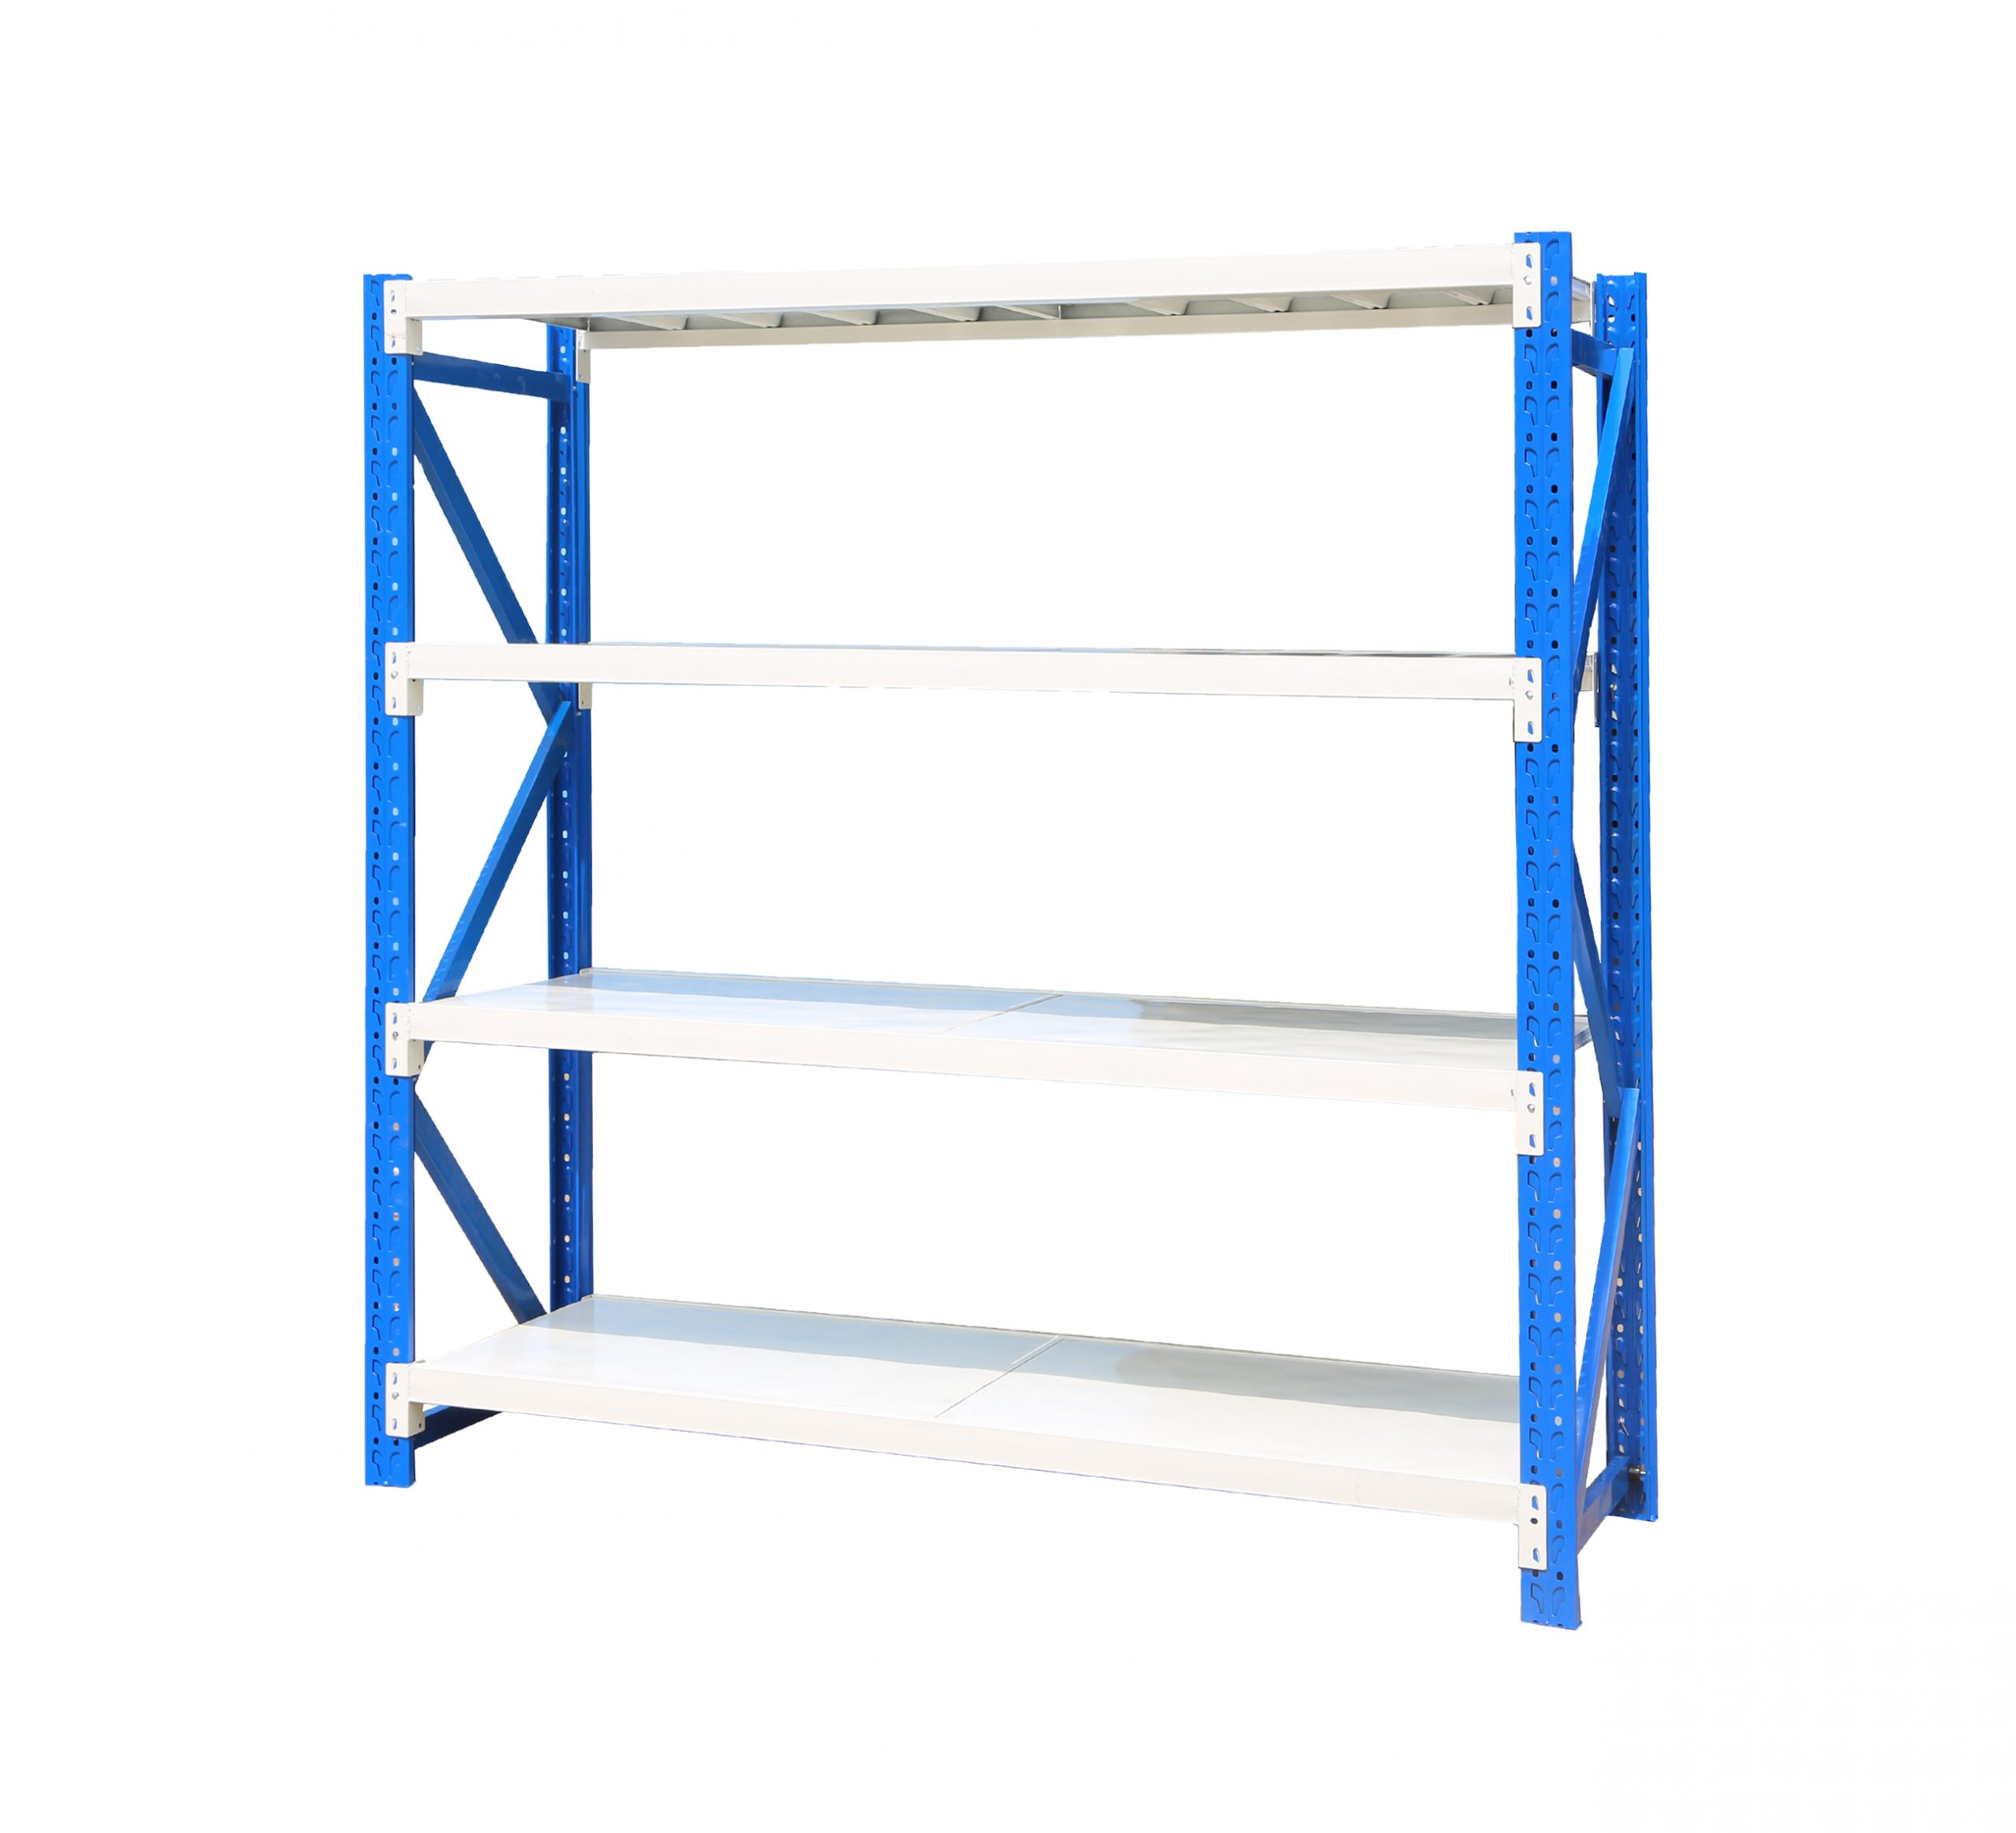 Shelving Ideas For Small Warehouse Spaces